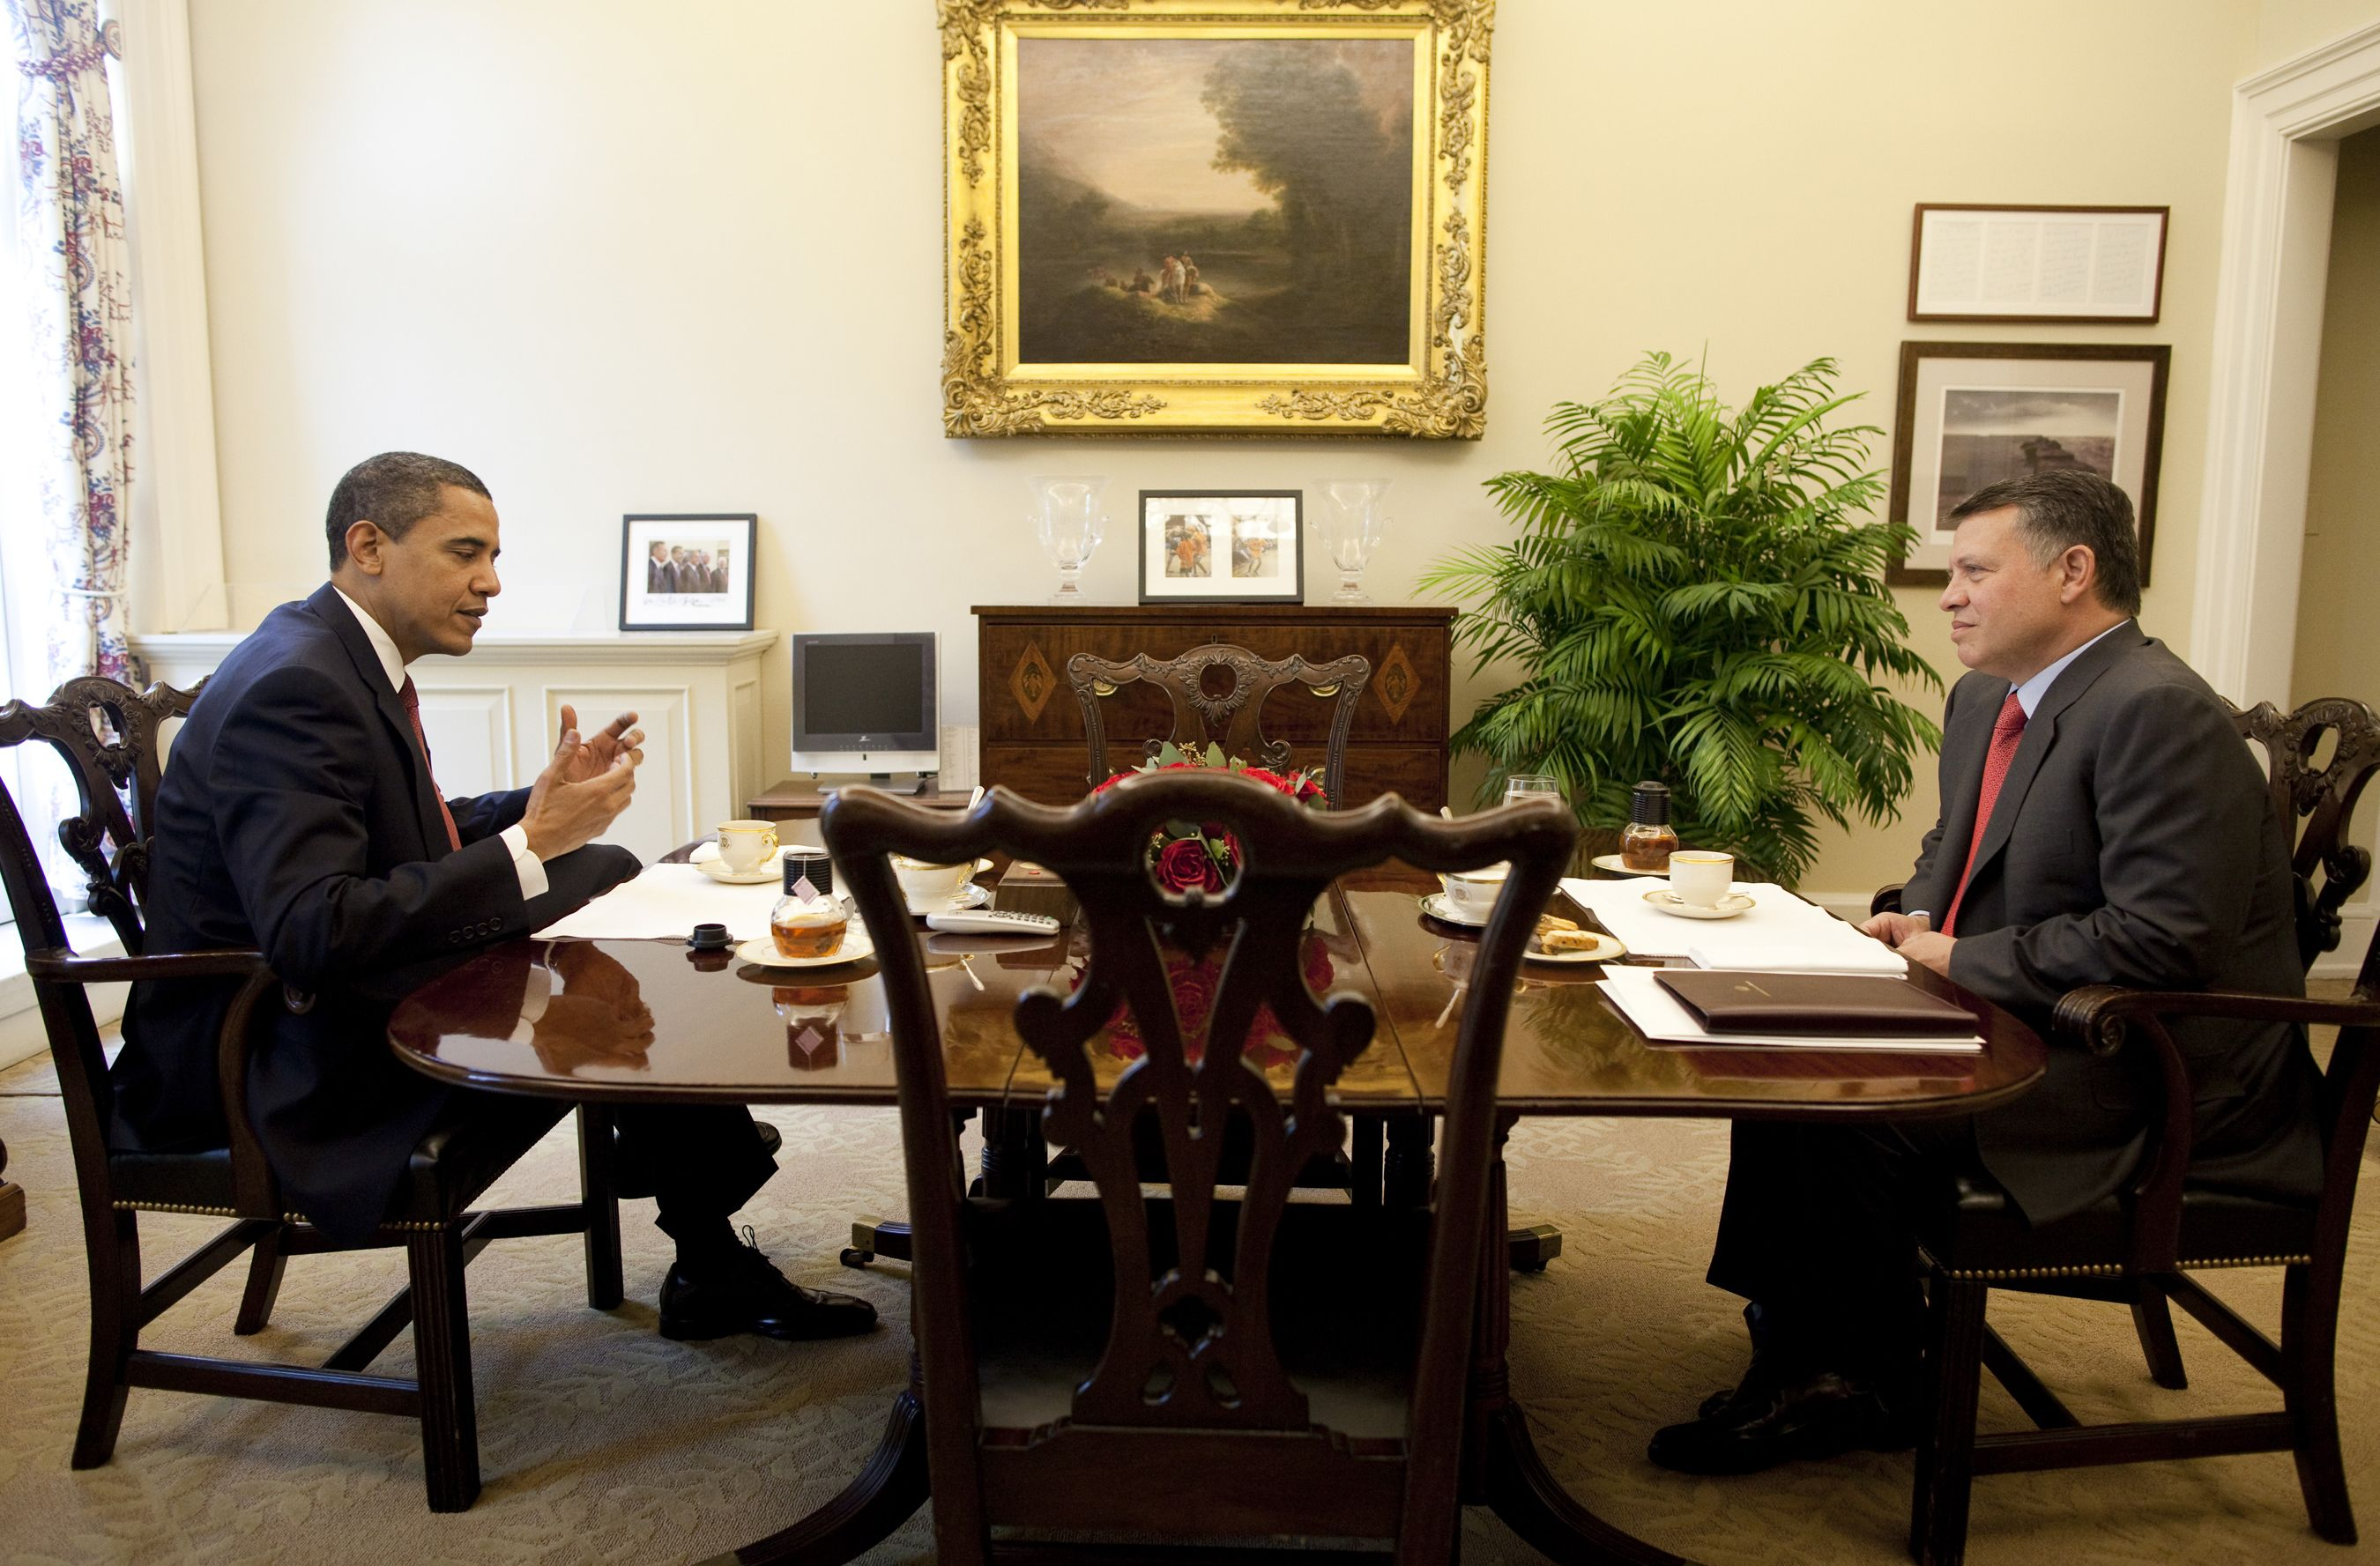 west wing oval office. President Barack Obama Is Seen Having Tea With King Abdullah Of Jordan In A One-. The West WingUs Wing Oval Office